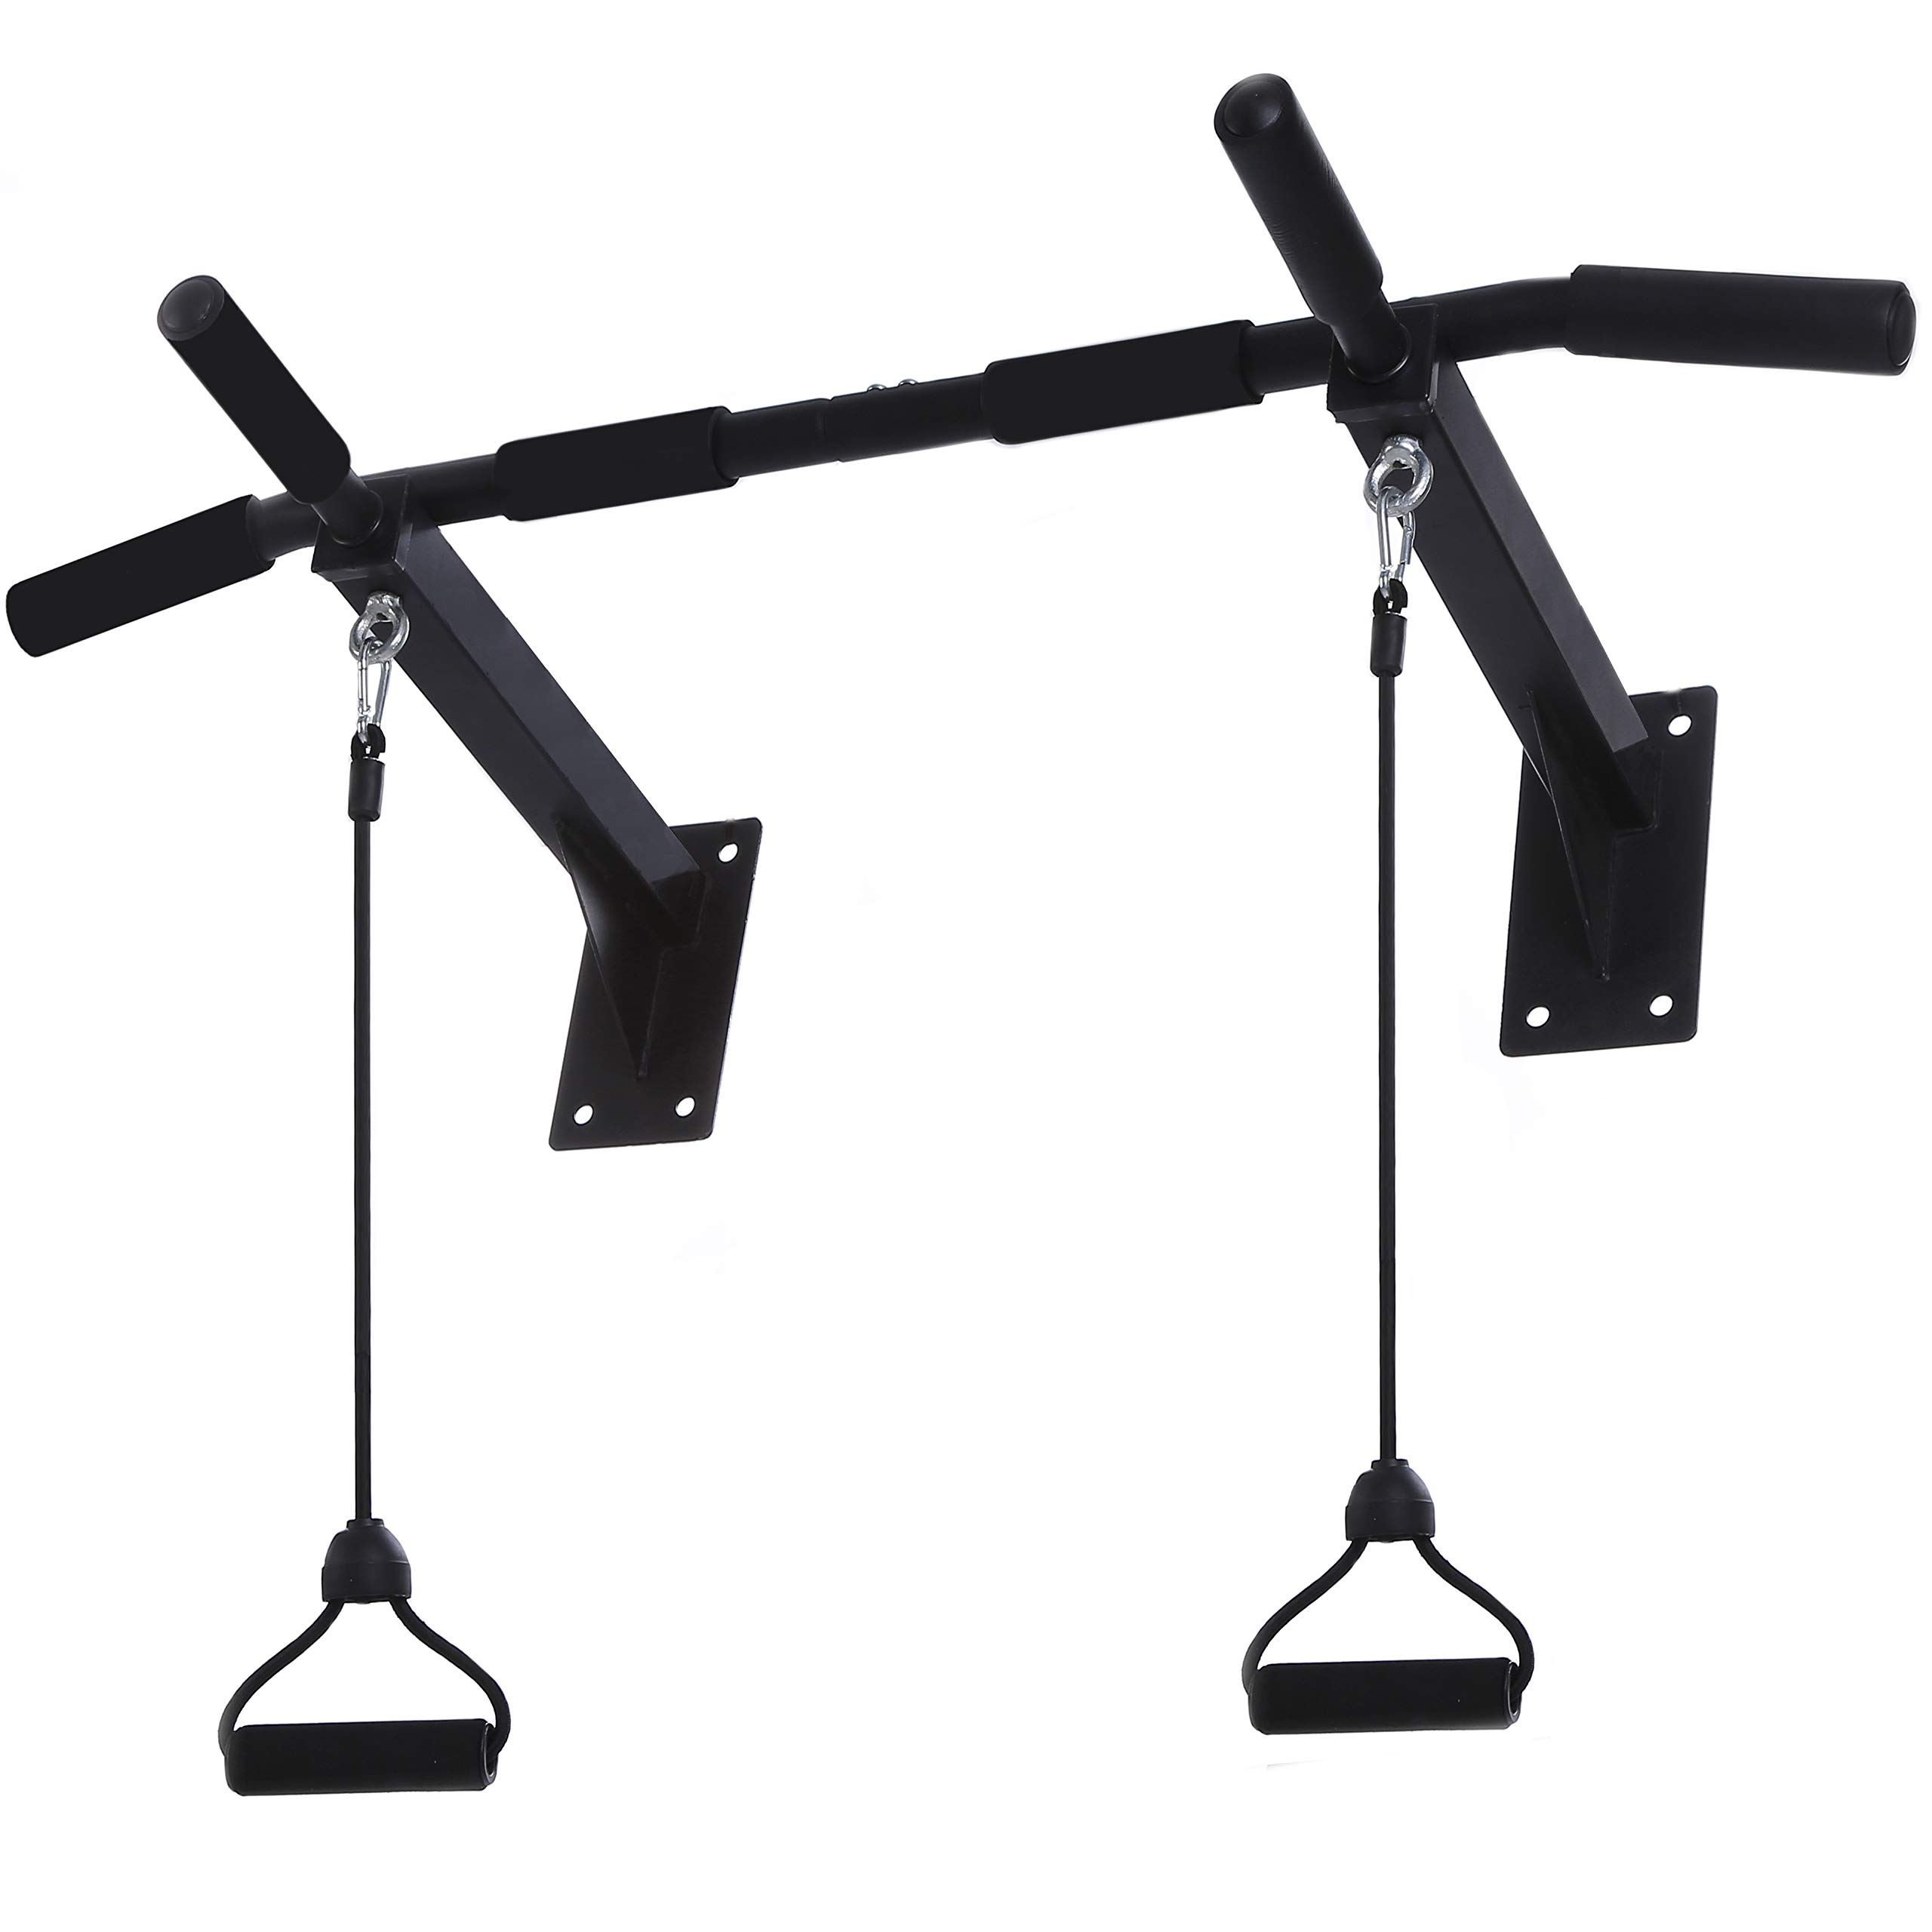 Wall Mounted Pull Up Bar - Upper Body Workout Bar with 4 Grip Positions, Resistance Band Workout Equipment